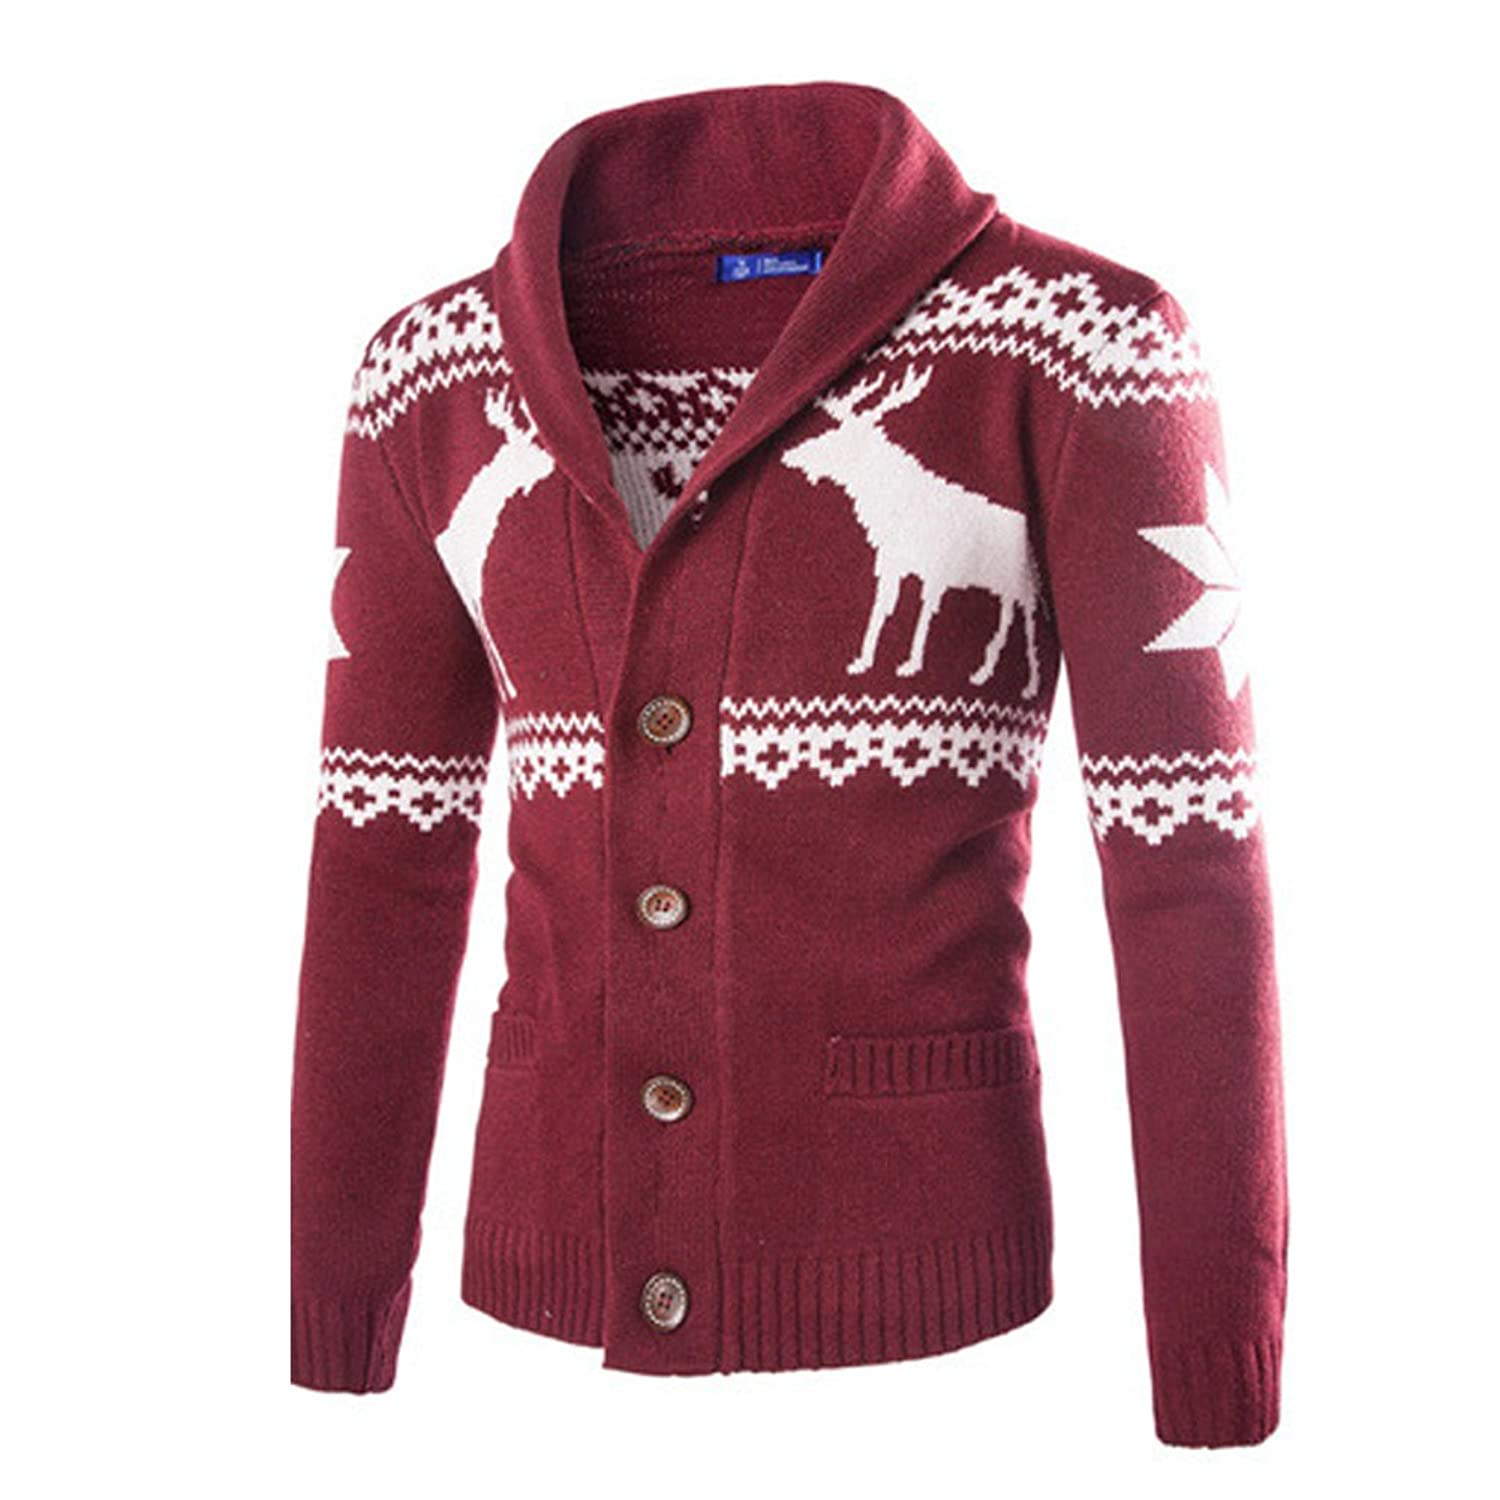 Men's Cardigan Long Sleeve Sweater Cable Knit Christmas Sweater Knitted Jacket Outwear